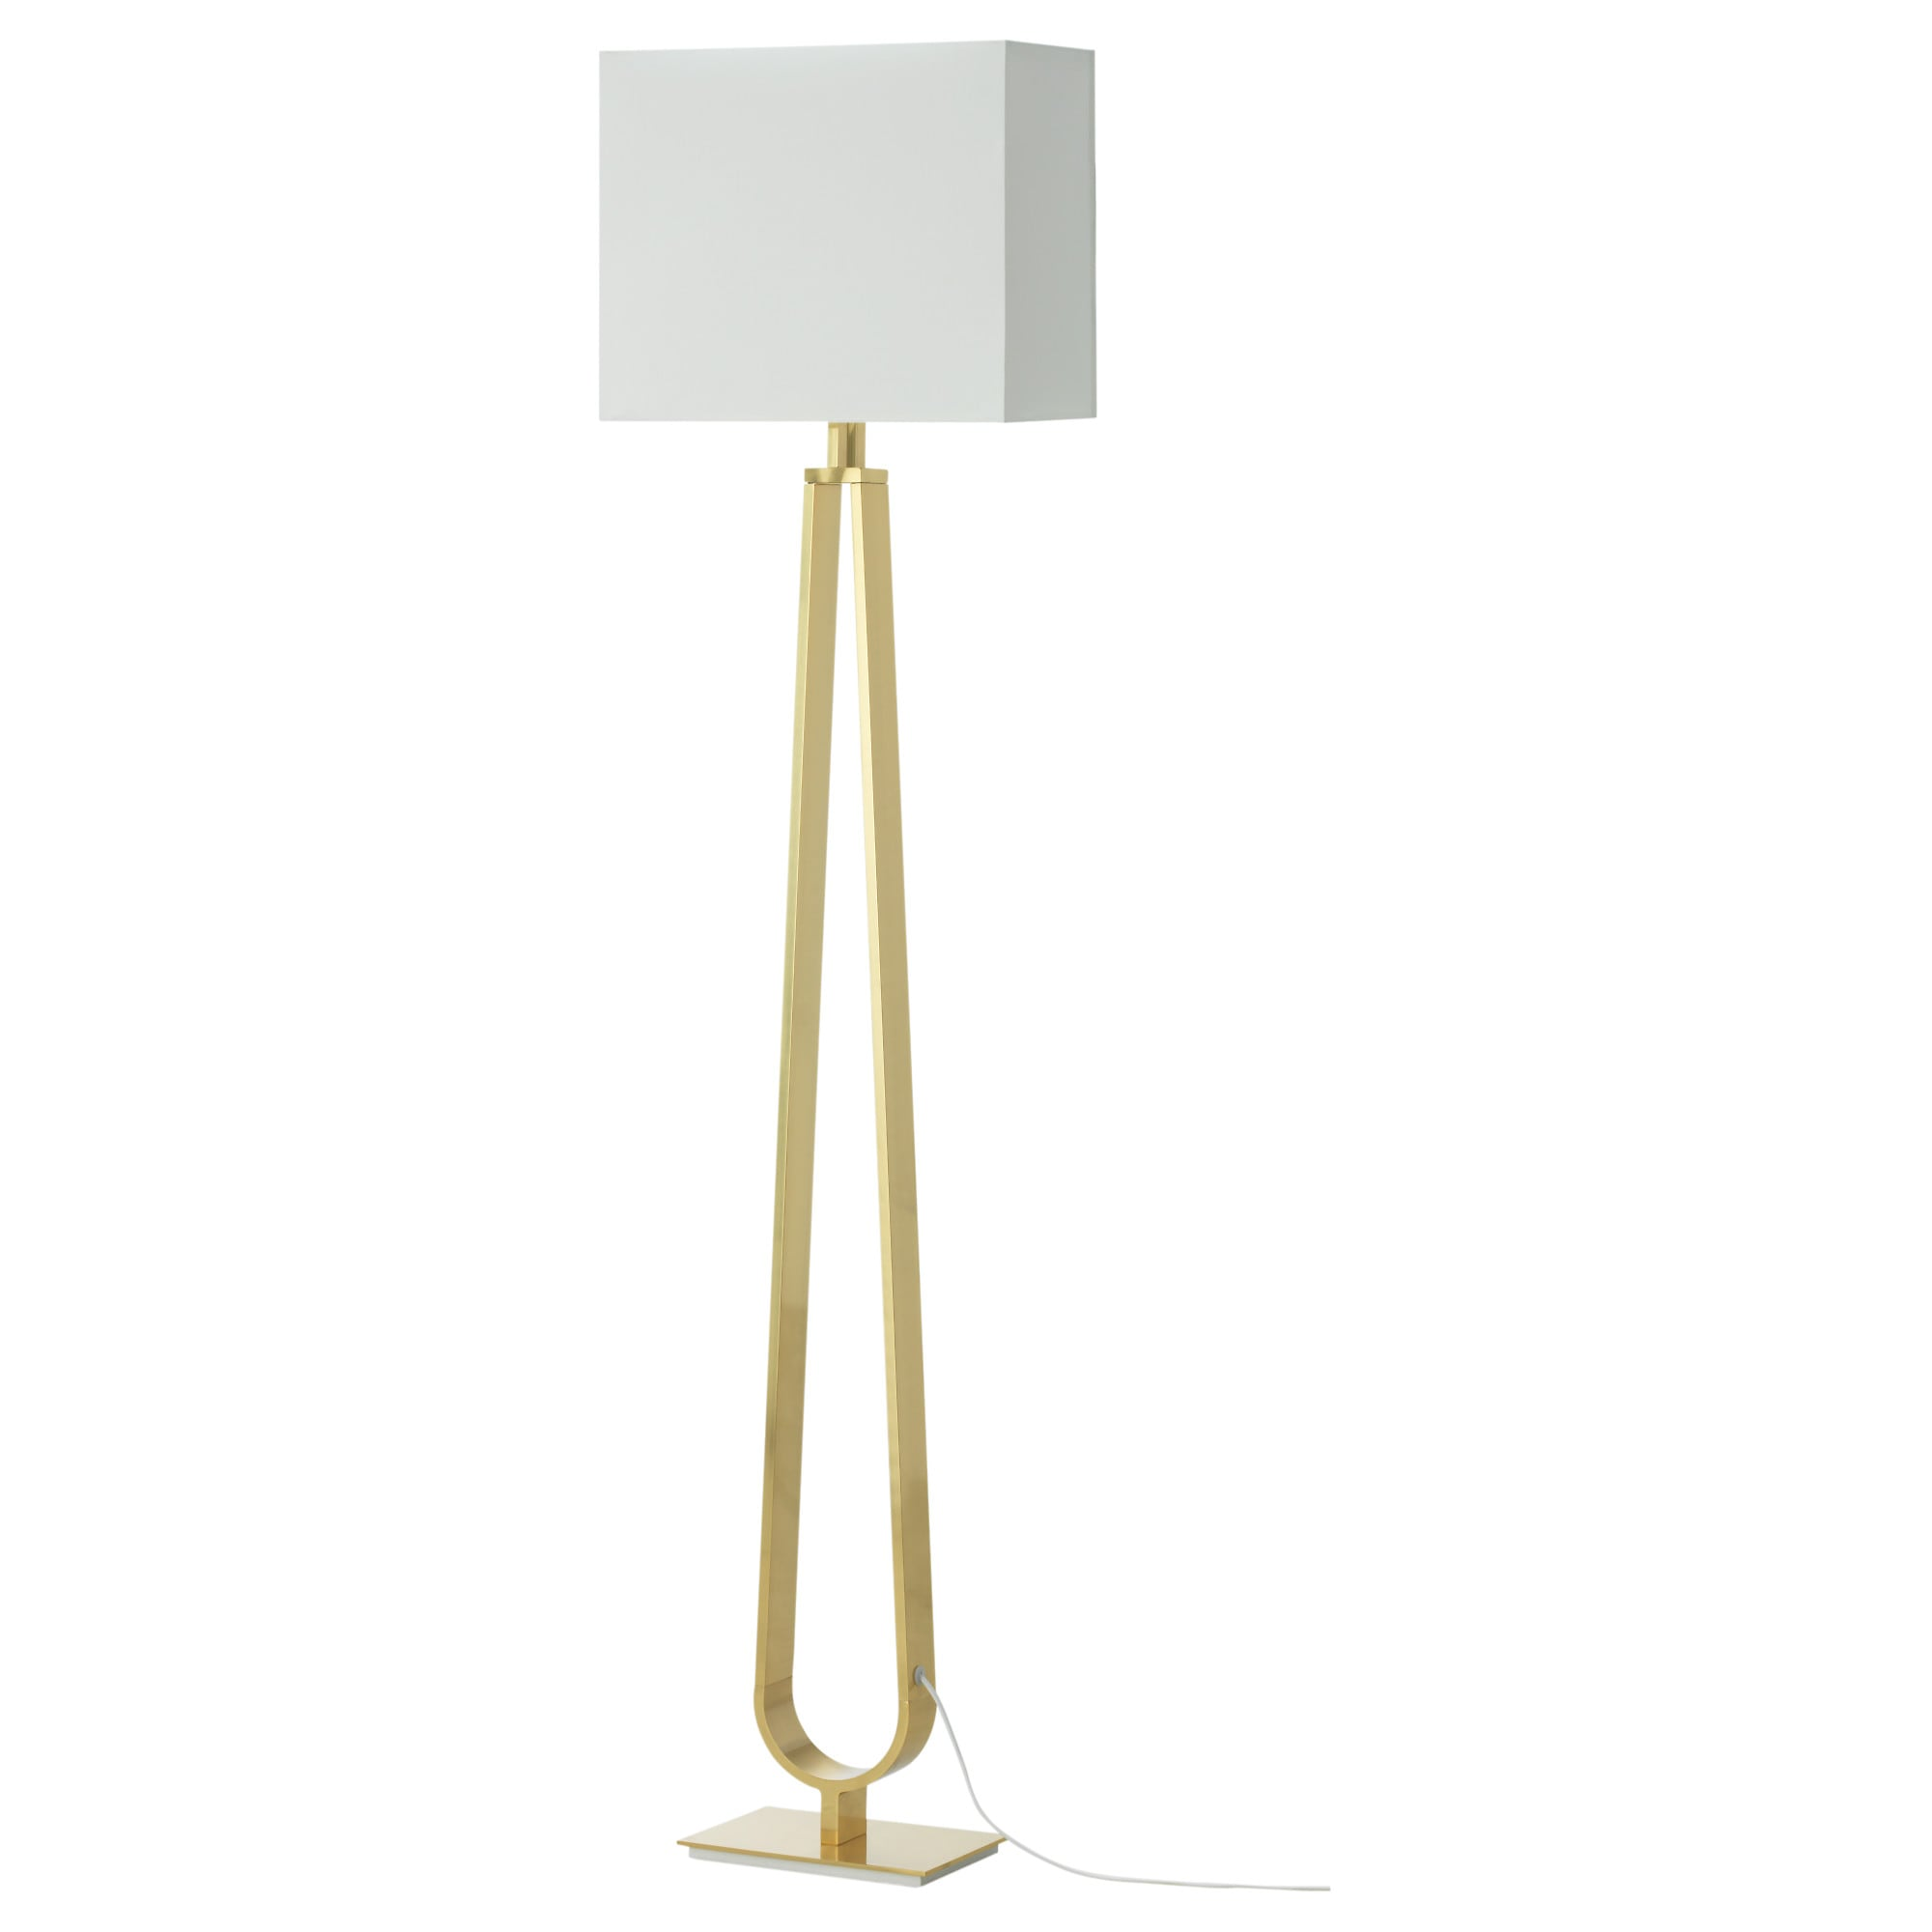 KLABB floor lamp with LED bulb, off-white, brass color Shade width: